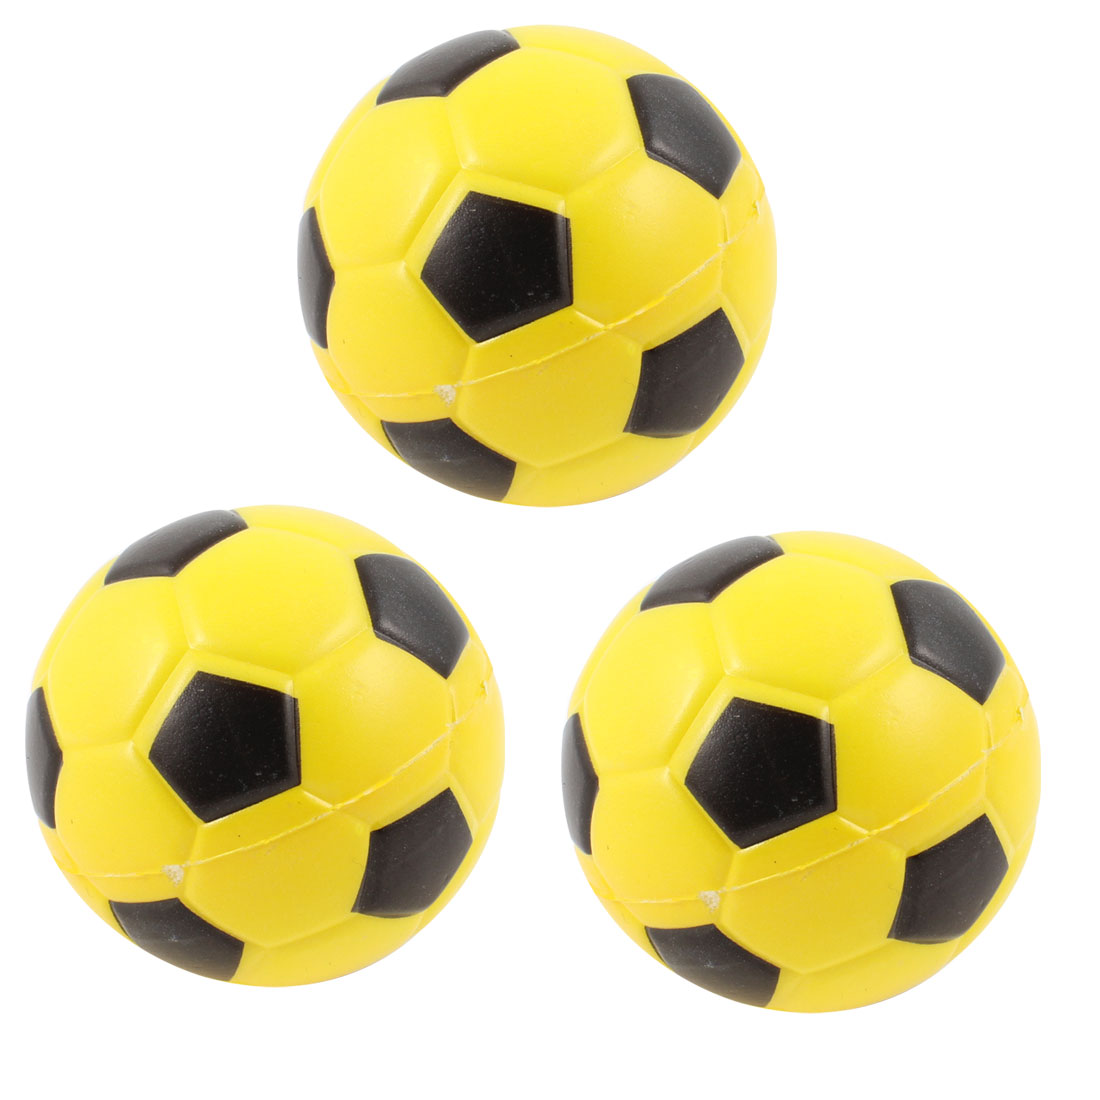 3 Pcs Yellow Black Sponge Mini Football Playing Toy Gift for Children